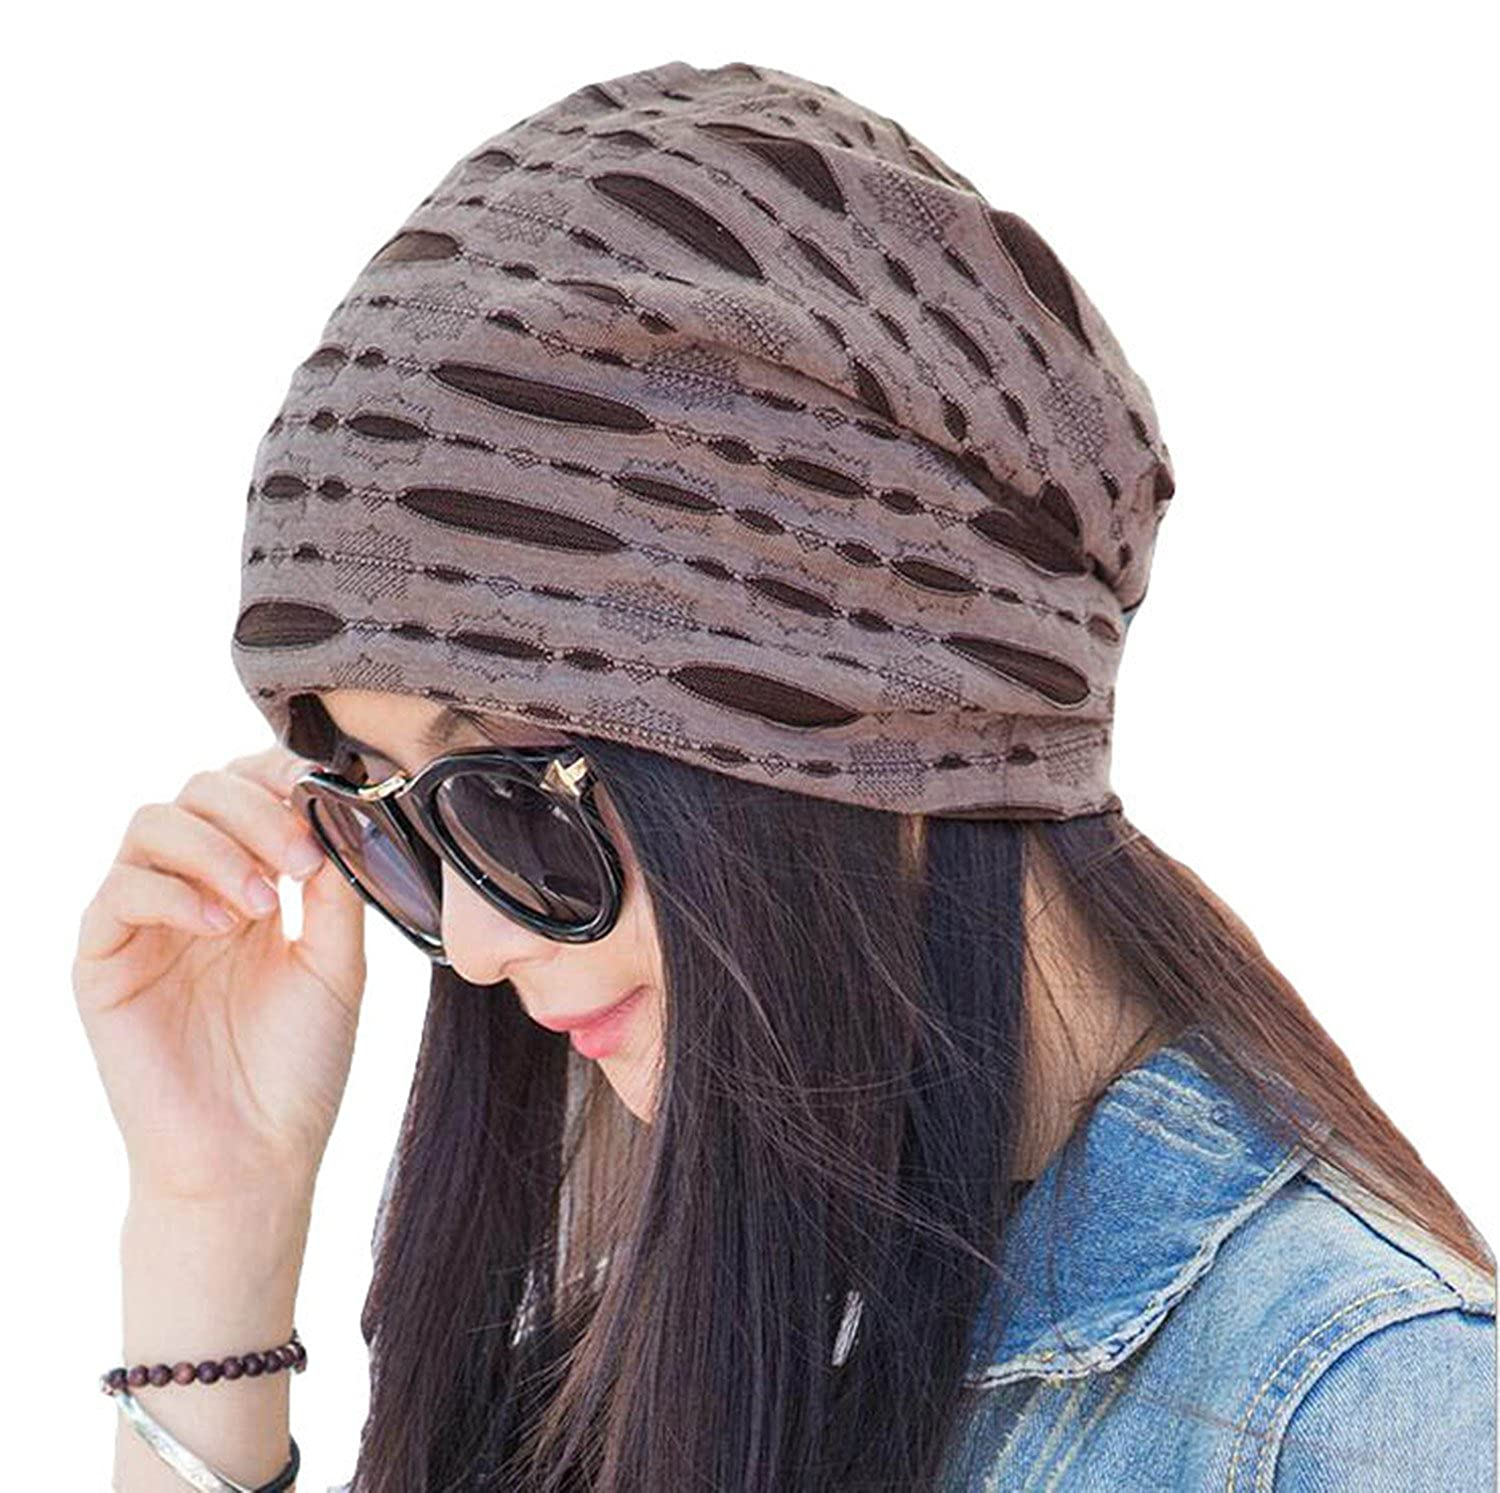 Century Star Womens Cotton Stylish Beanie Slouchy Fashionable Hats for Hairloss Cancer Chemo